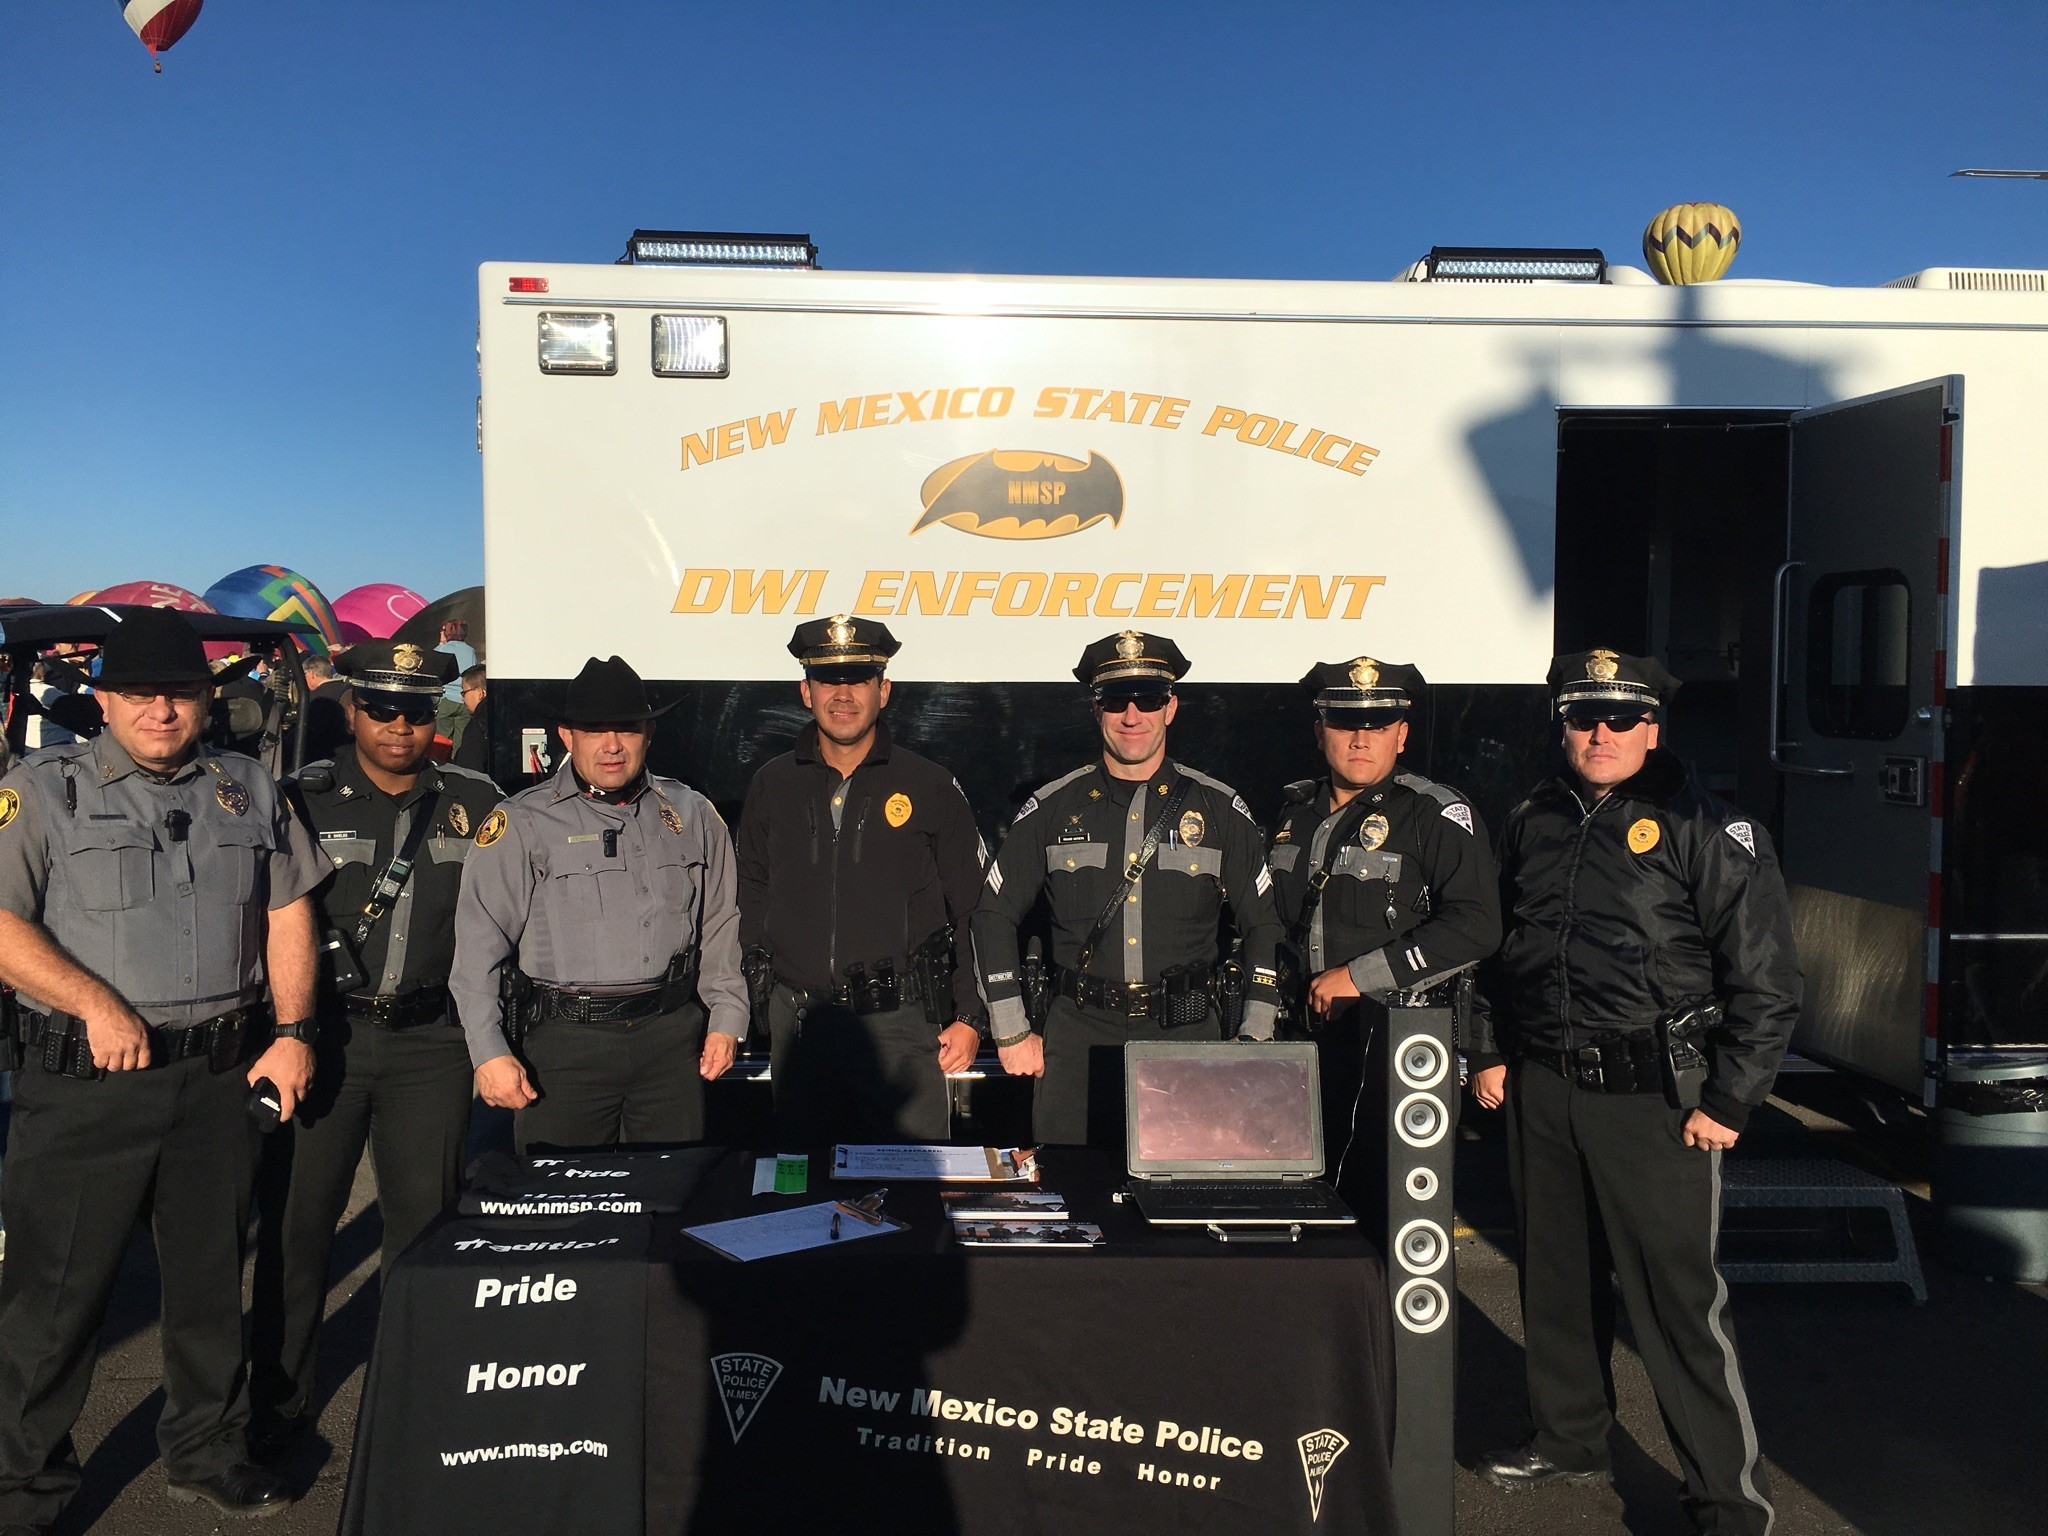 New Mexico Mounted Patrol Troopers Assisting New Mexico State Police Oifficers